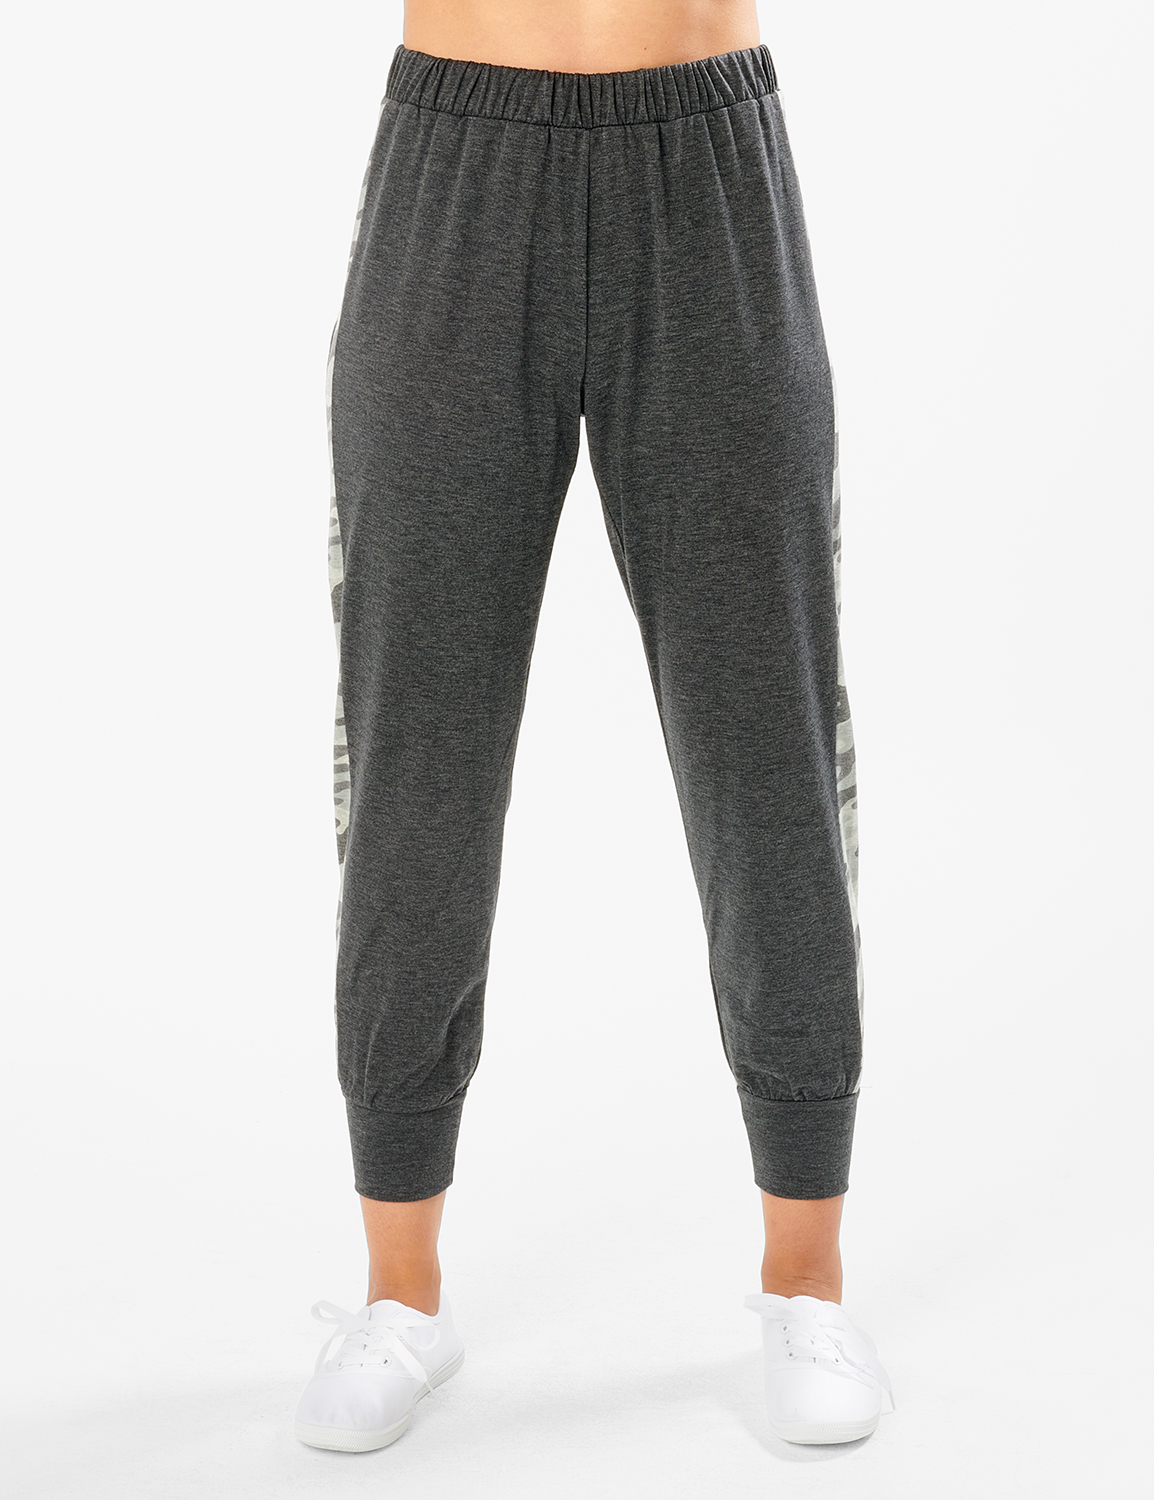 Jogger Knit Pant With Camouflage Trim - Misses -Charcoal - Front